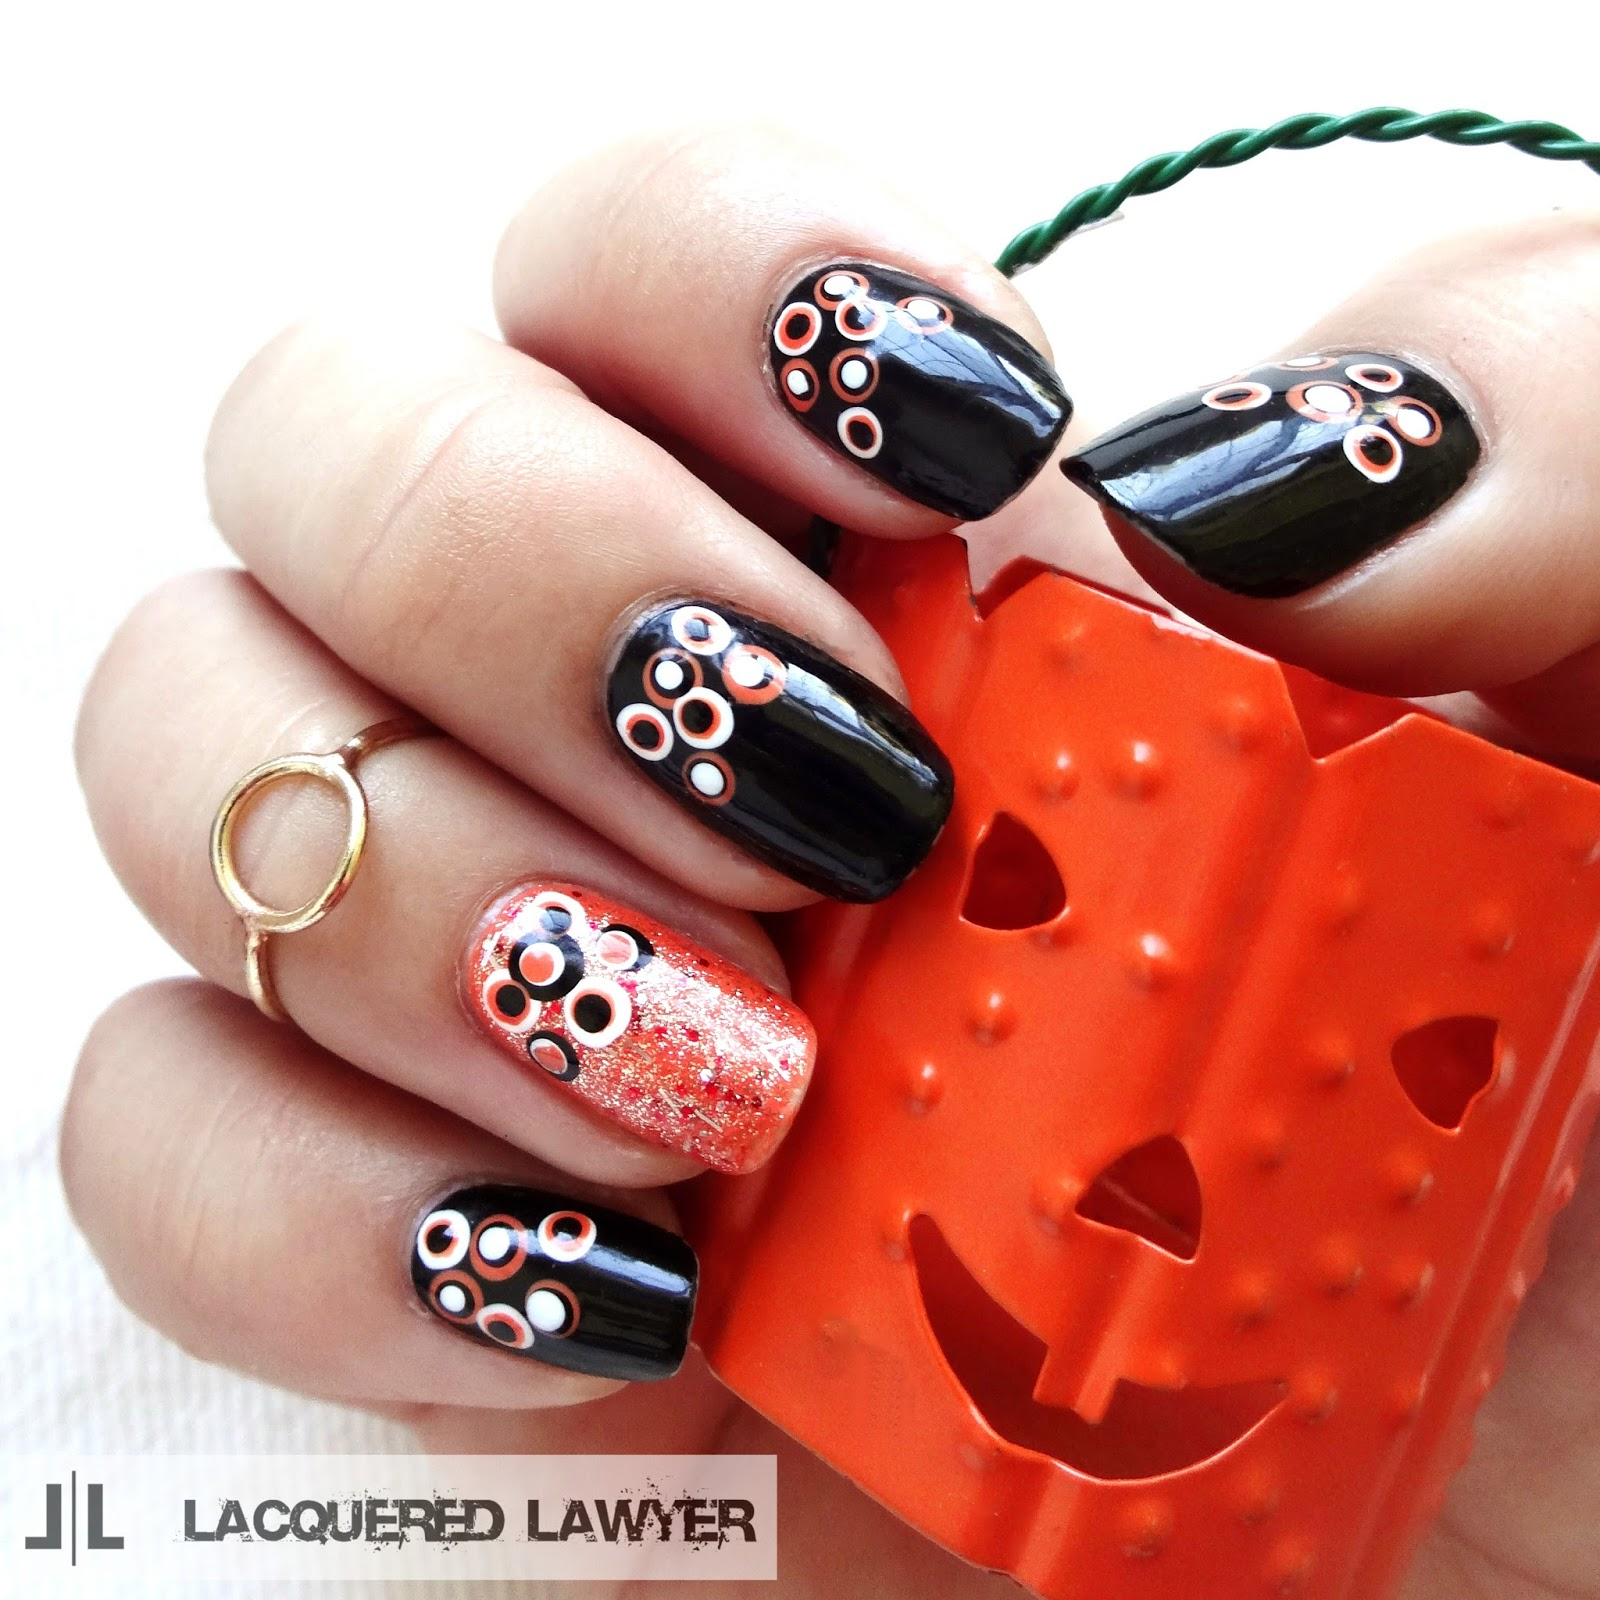 Lacquered Lawyer | Nail Art Blog: Halloween Dotticure